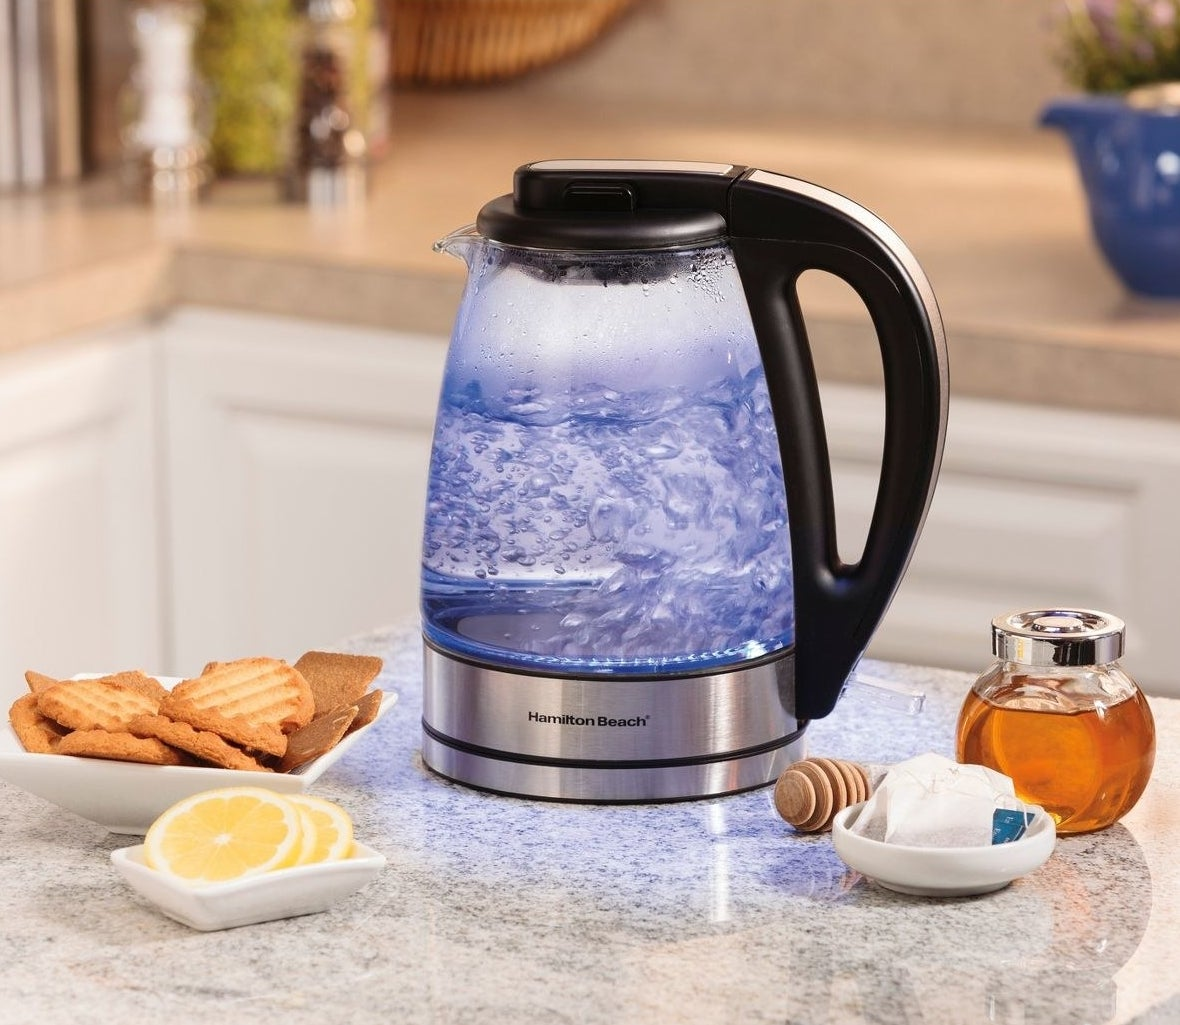 The electric kettle